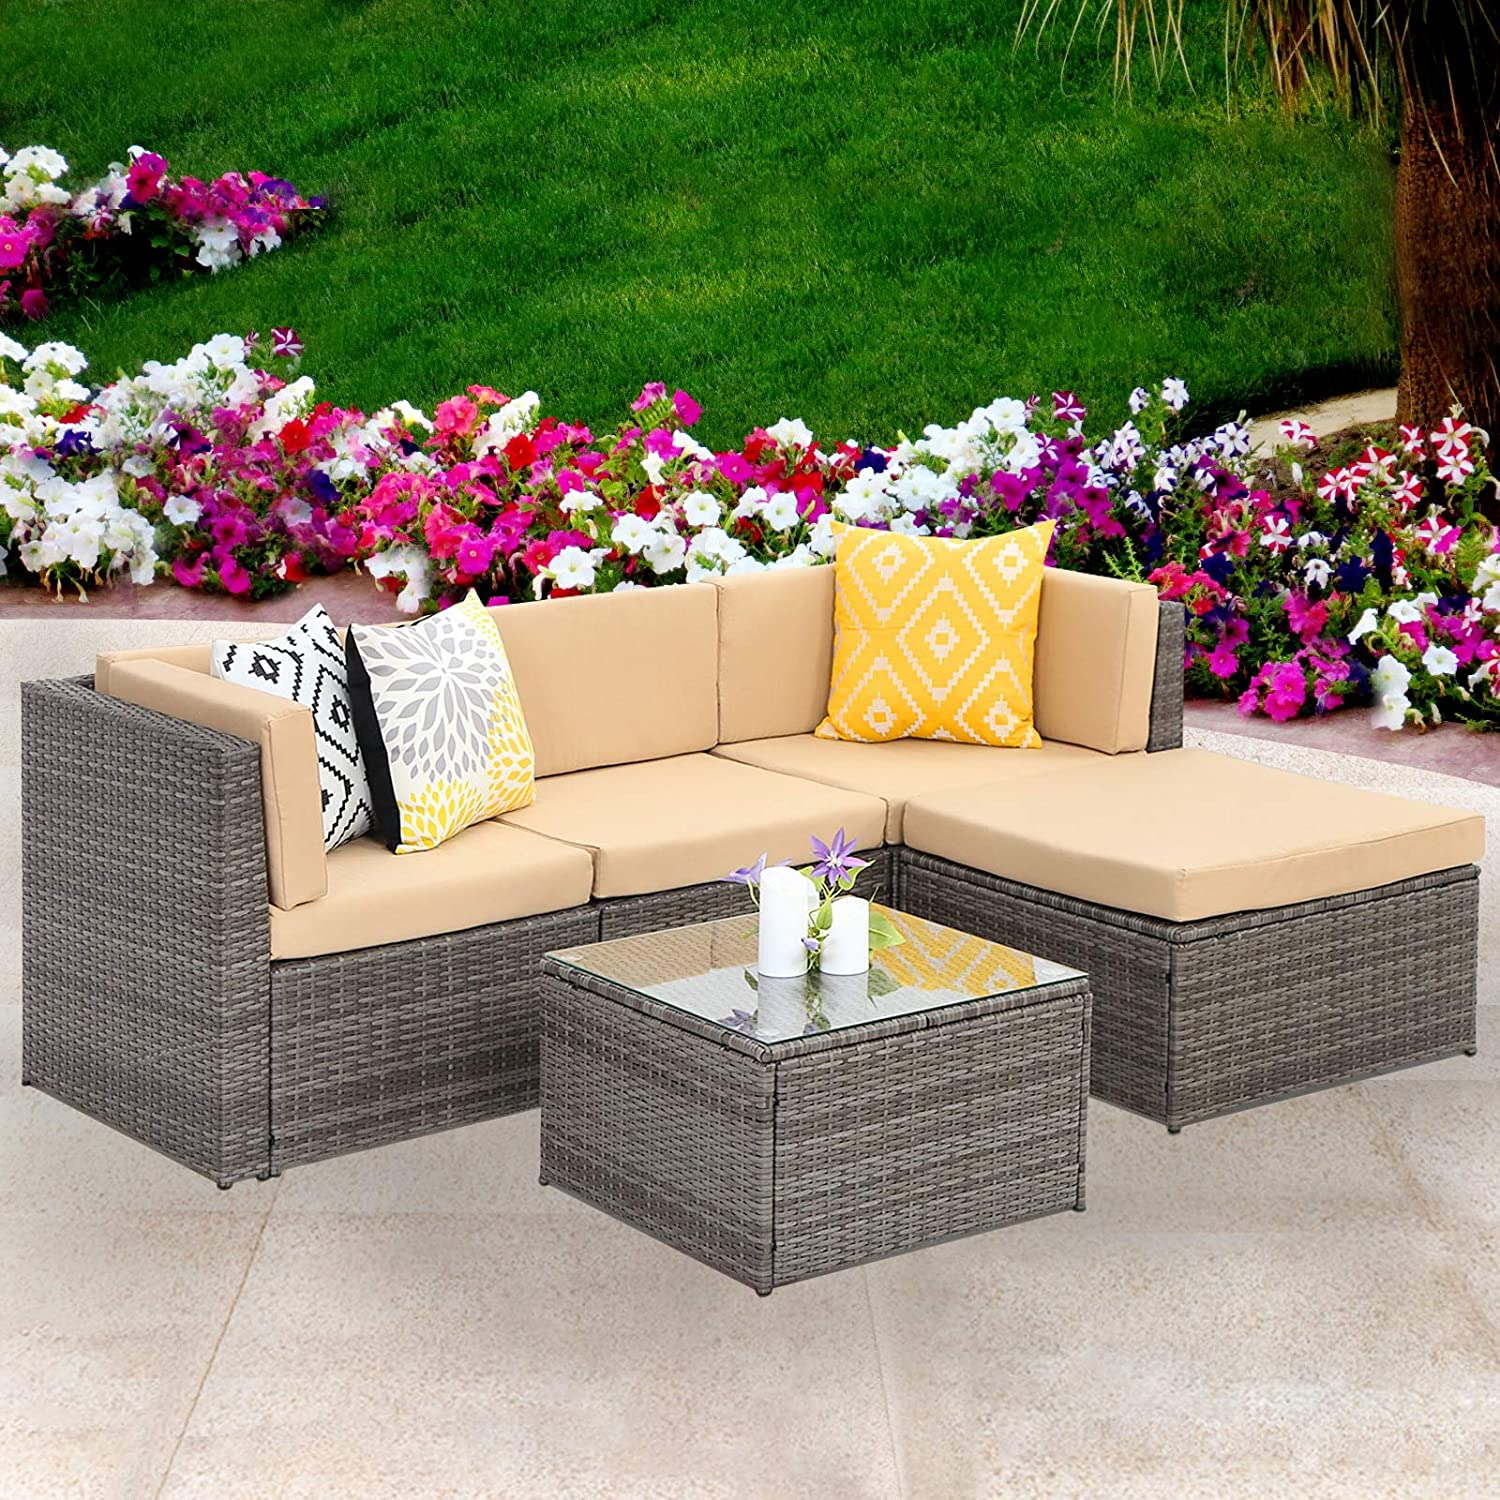 Amazon com wisteria lane outdoor sectional patio furniture 5 piece wicker rattan sofa couch with ottoma conversation set gray wicker beige cushions